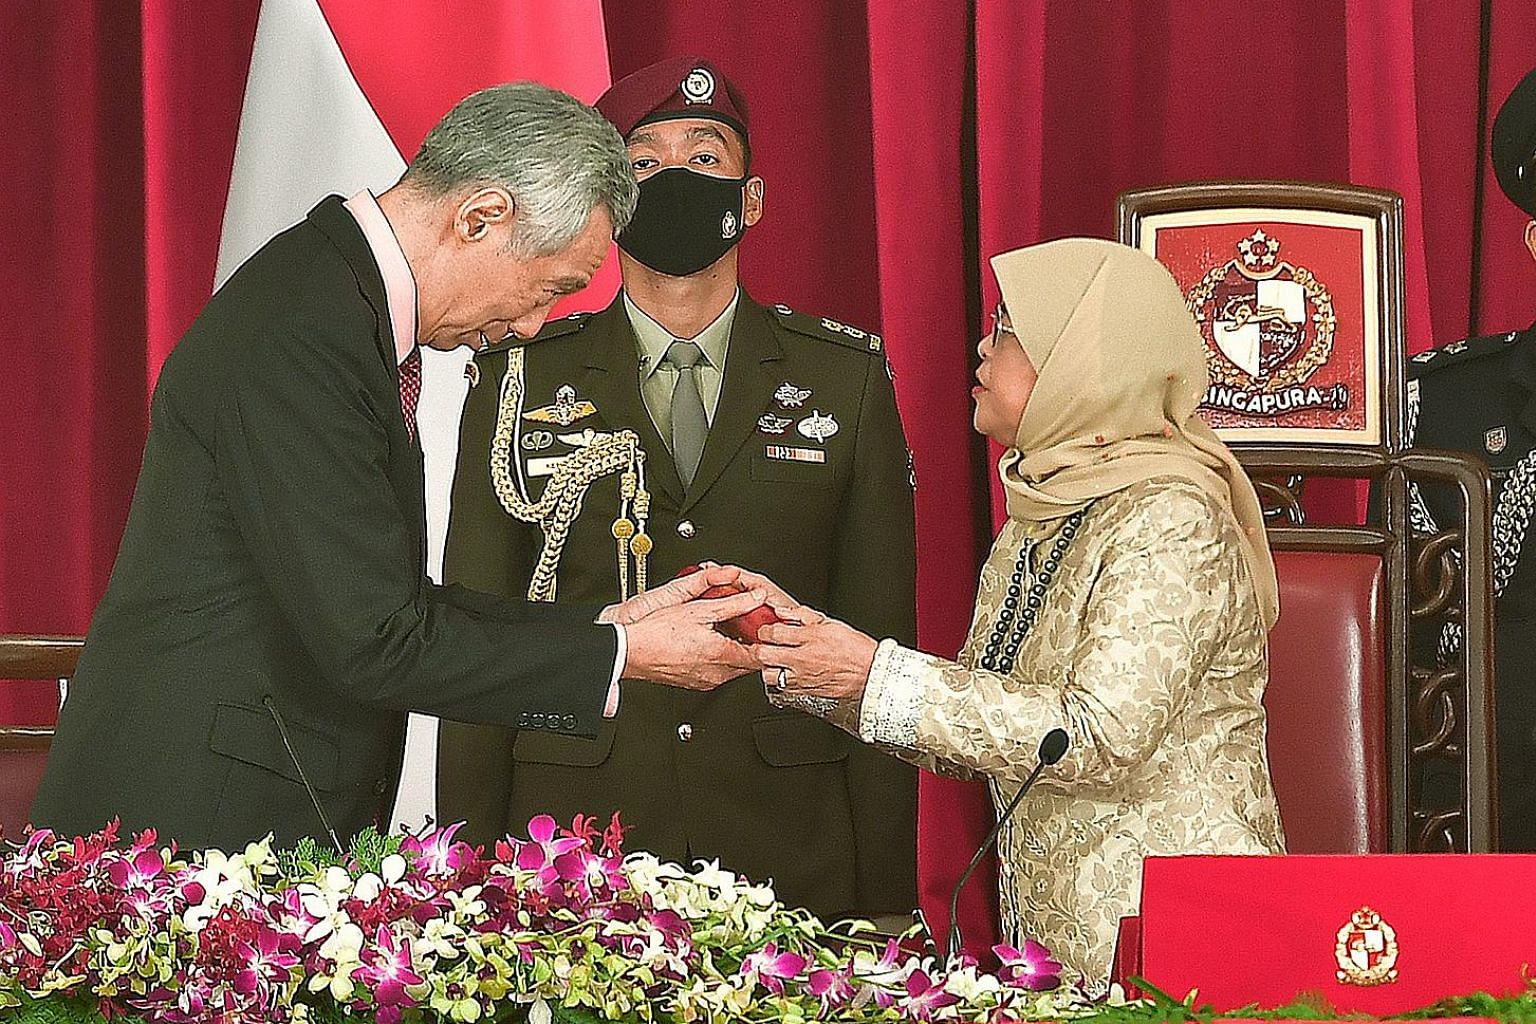 Prime Minister Lee Hsien Loong receiving the instrument of appointment from President Halimah Yacob at the Istana yesterday, during the swearing-in ceremony for the Prime Minister and other Cabinet ministers. ST PHOTO: DESMOND WEE